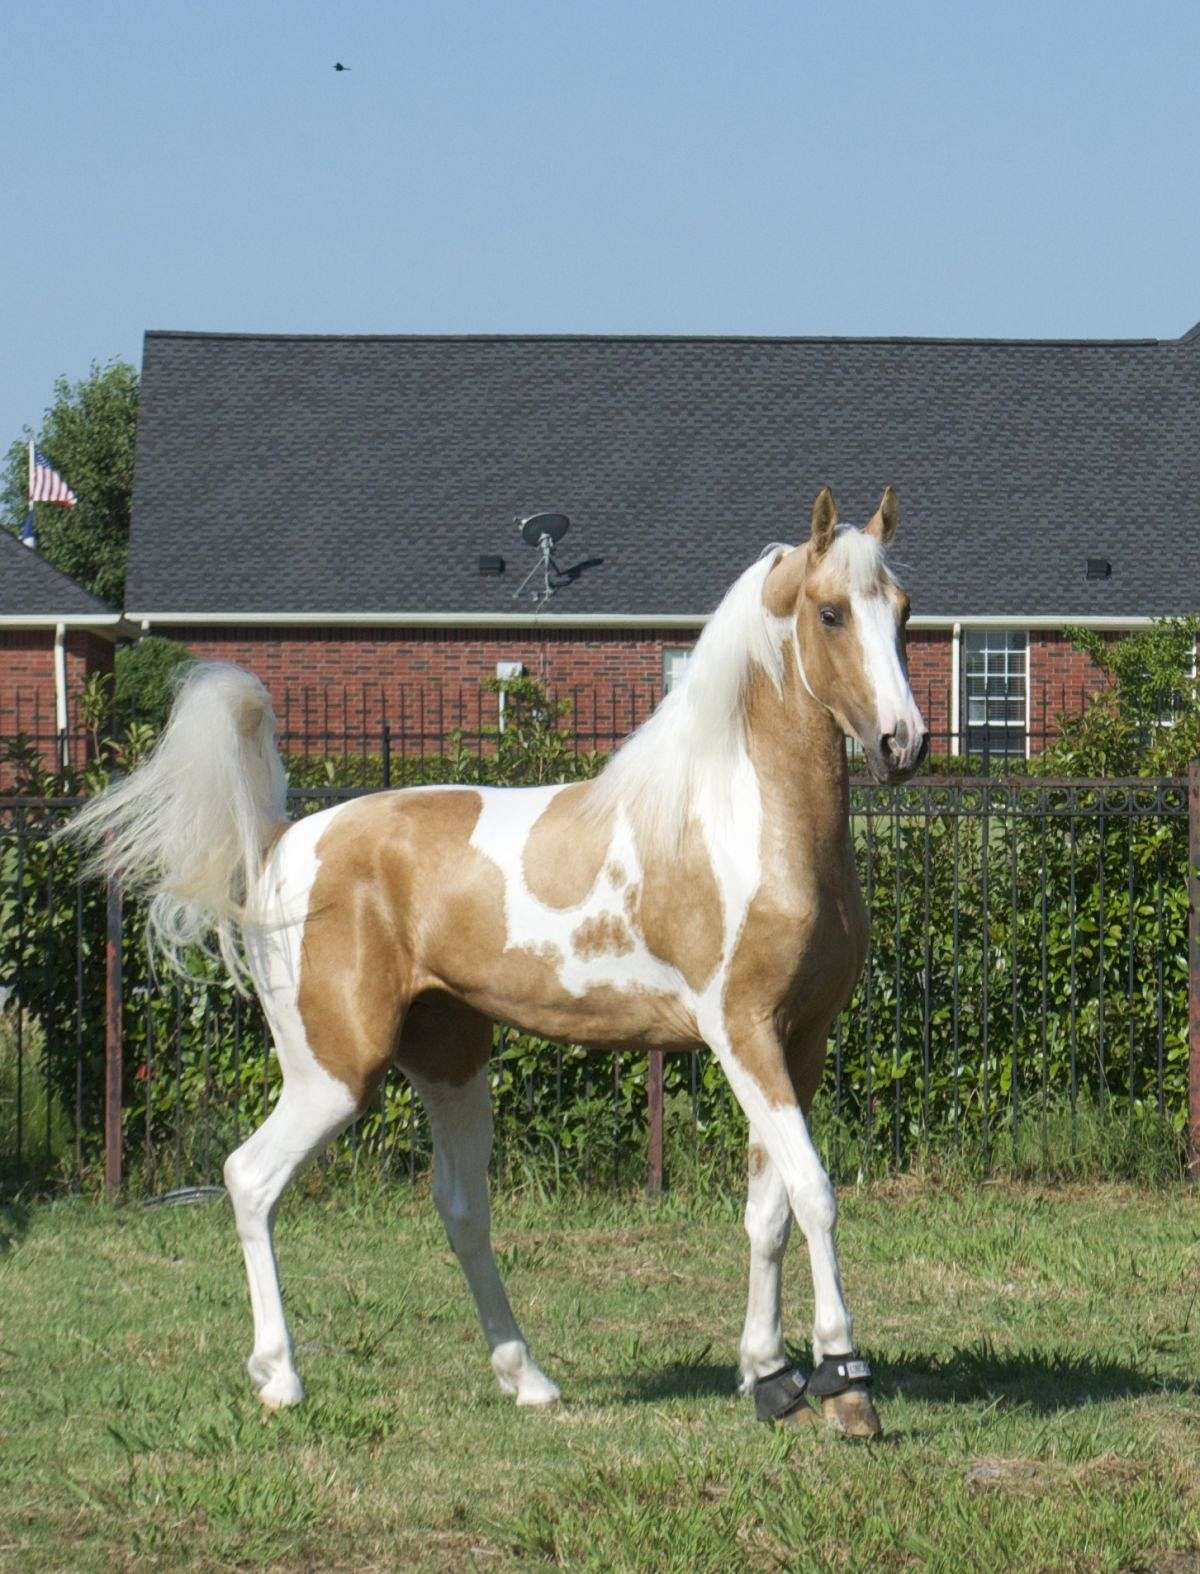 Mrf Sunsation Gorgeous Palomino Homozygous Pinto Asha Great Arab Cross